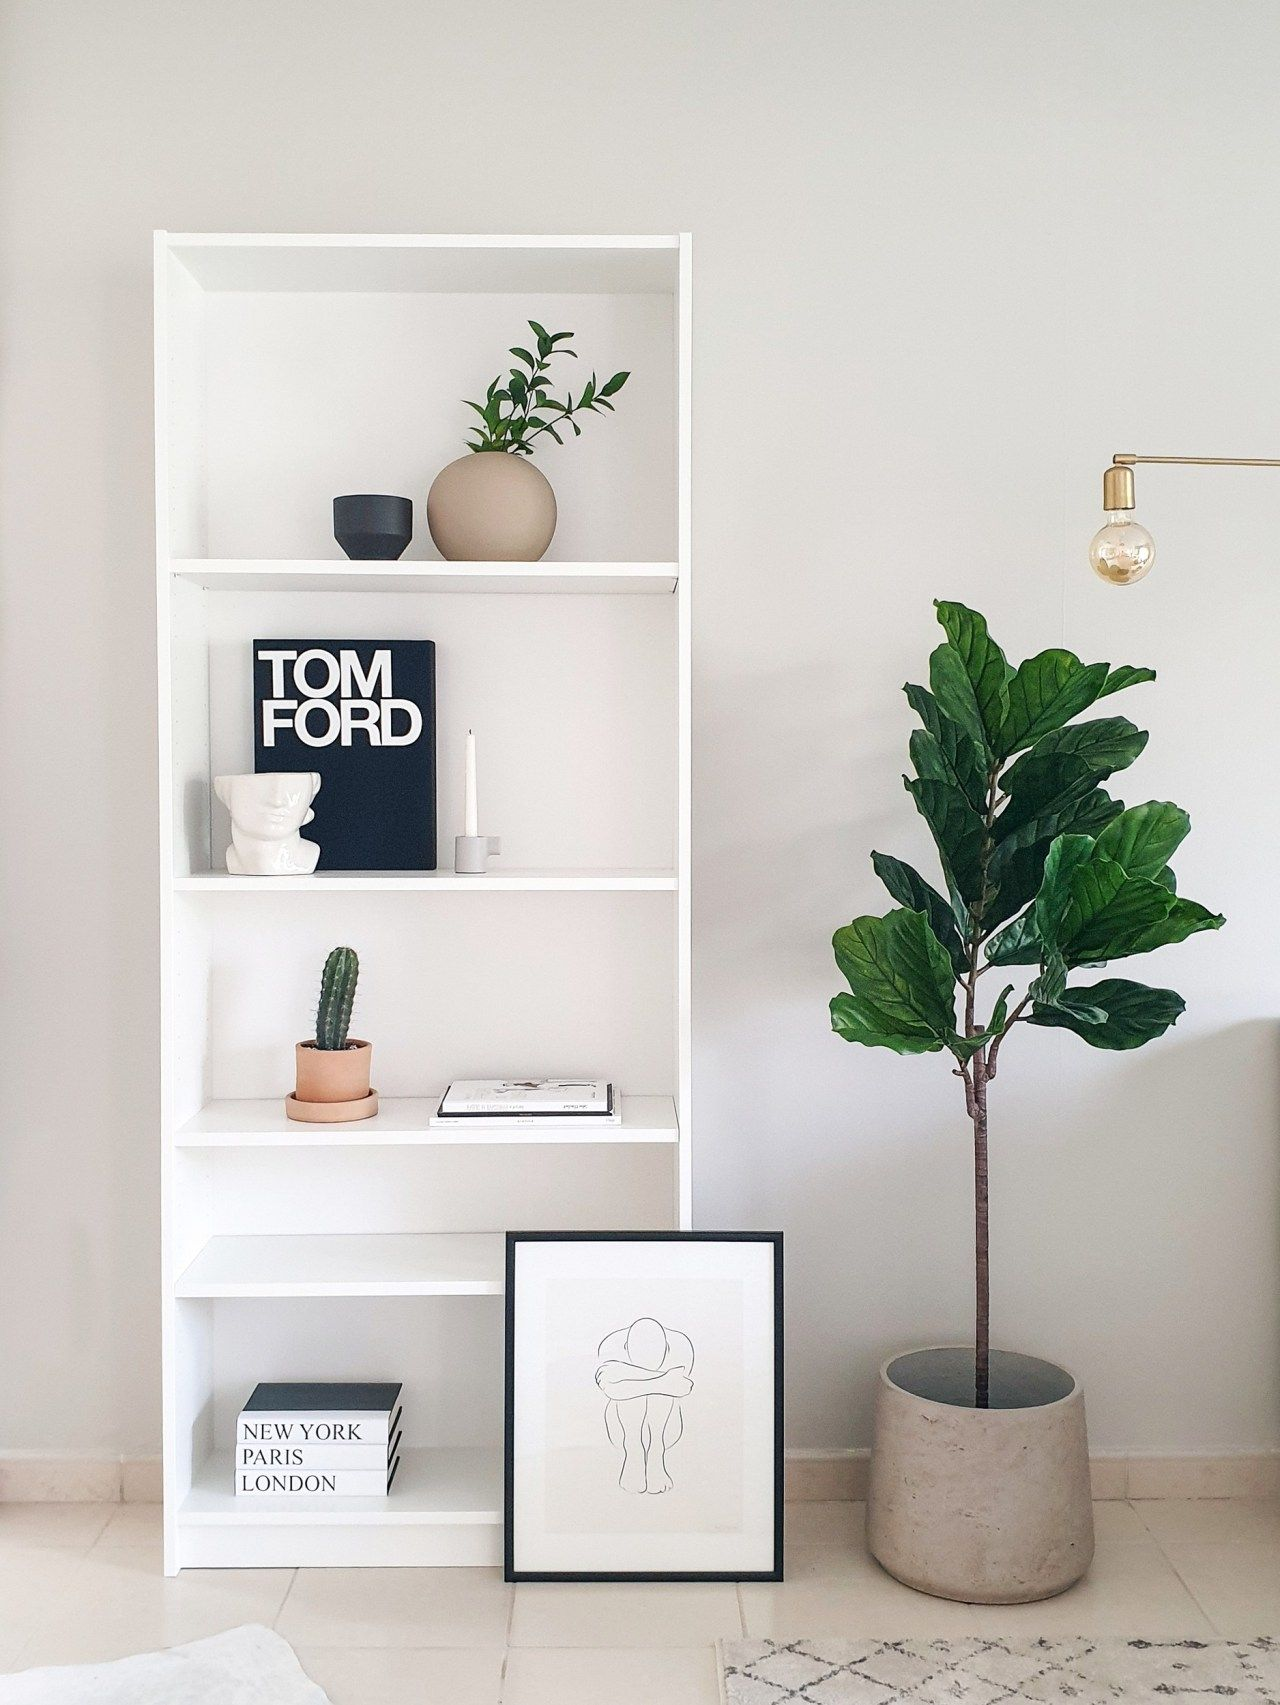 Ikea S Billy Bookcase Turns 40 And I Hacked It To Celebrate